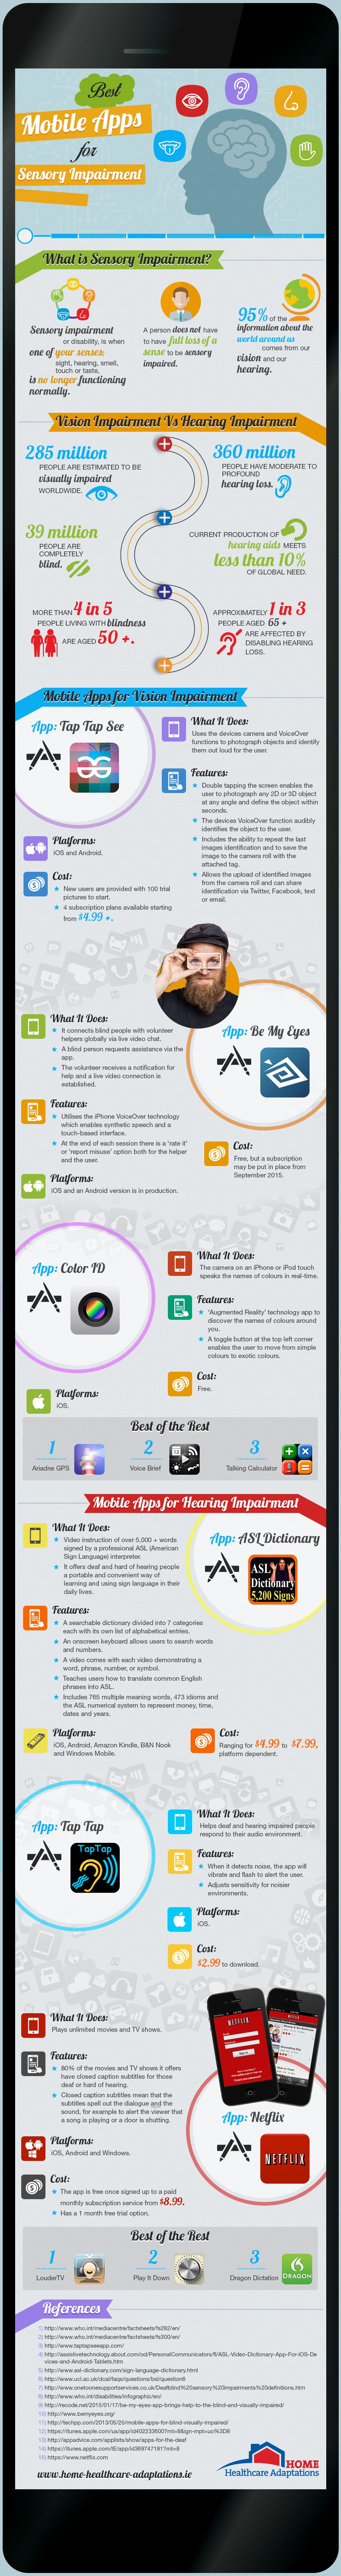 infografia-apps-discapacitados-visuales-auditivos